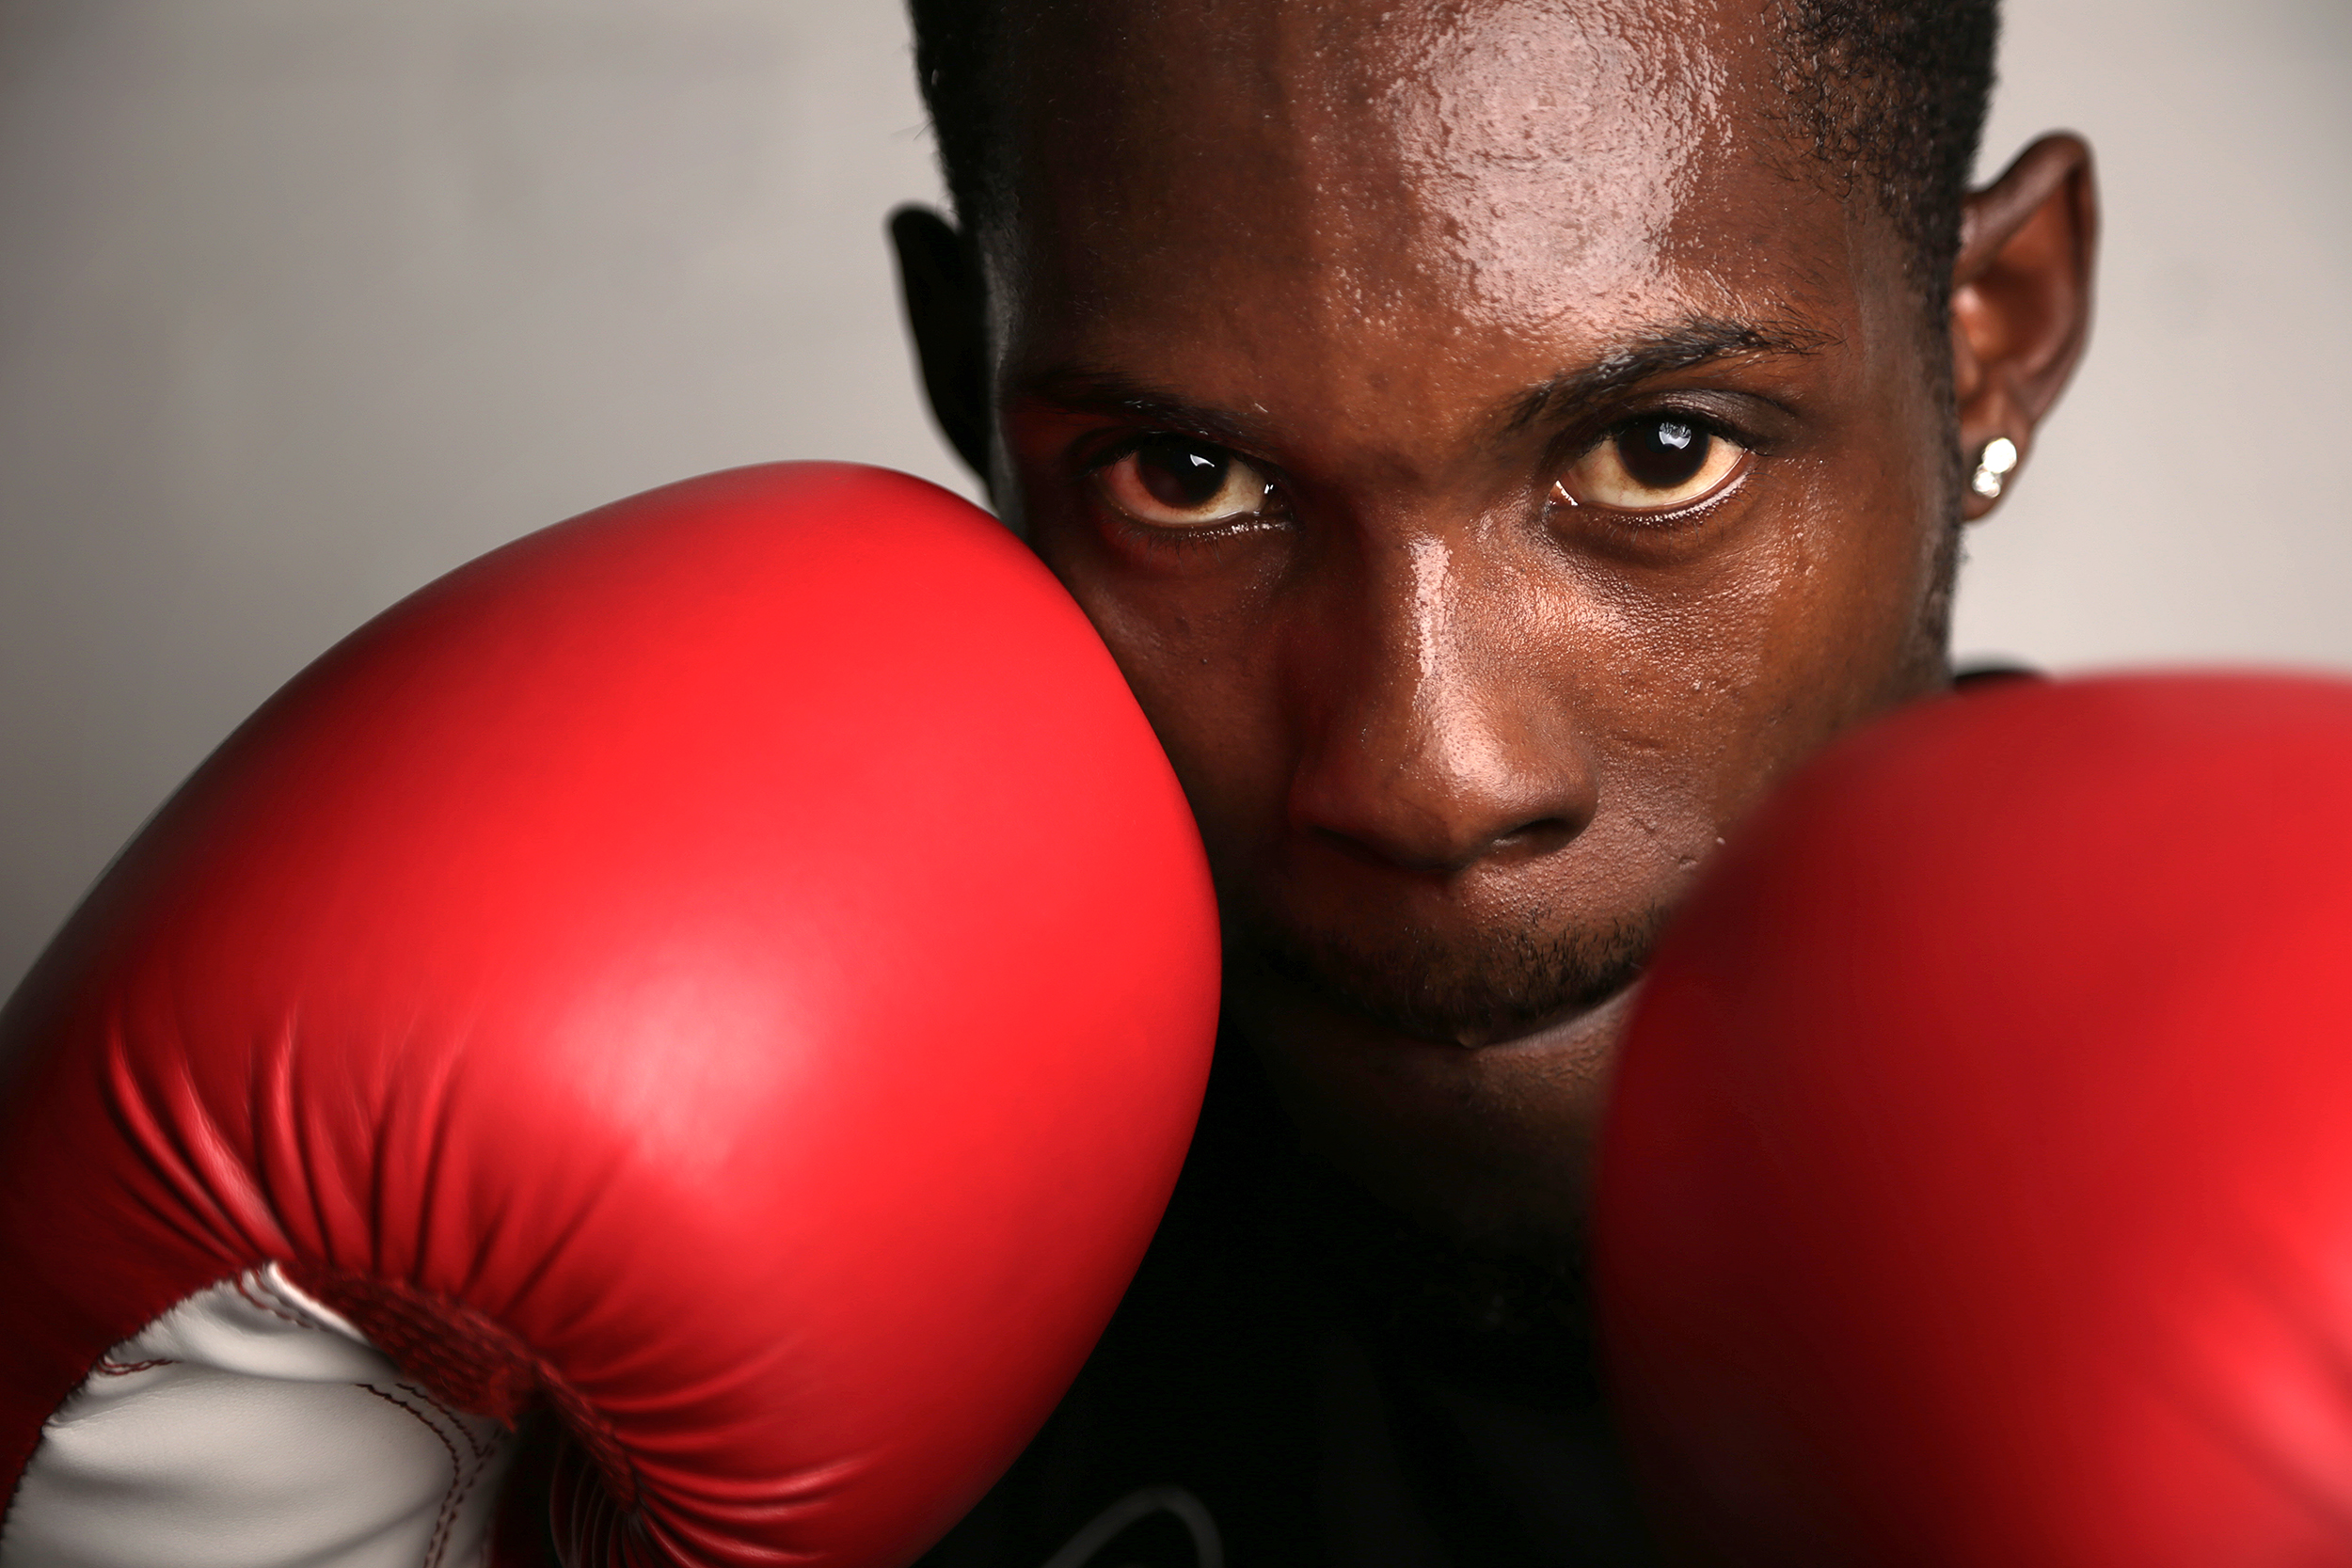 alex foster photographer london essex dublin south east boxing boxer carneys community wandsworth red gloves portrait.jpg